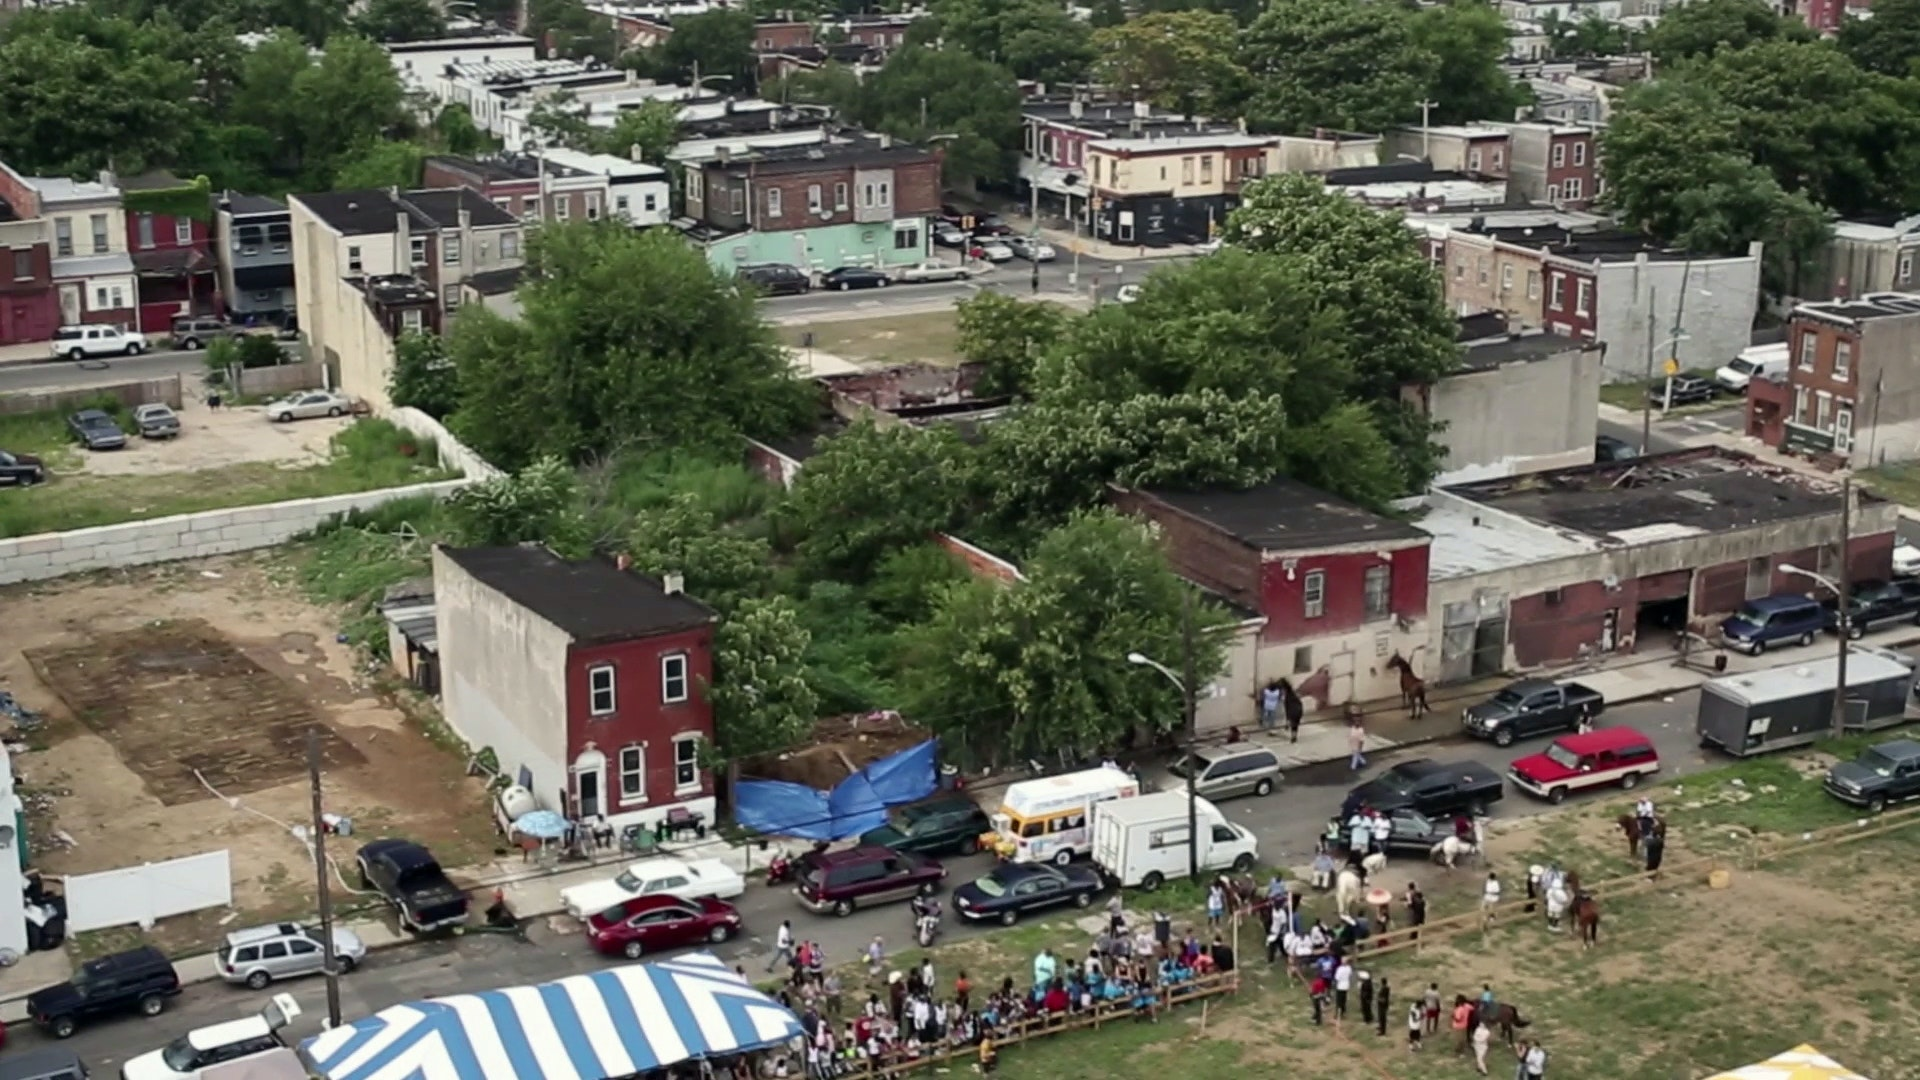 An aerial view of the Horse Day event shows rundown row houses and empty lots, illustrating the area's poverty.